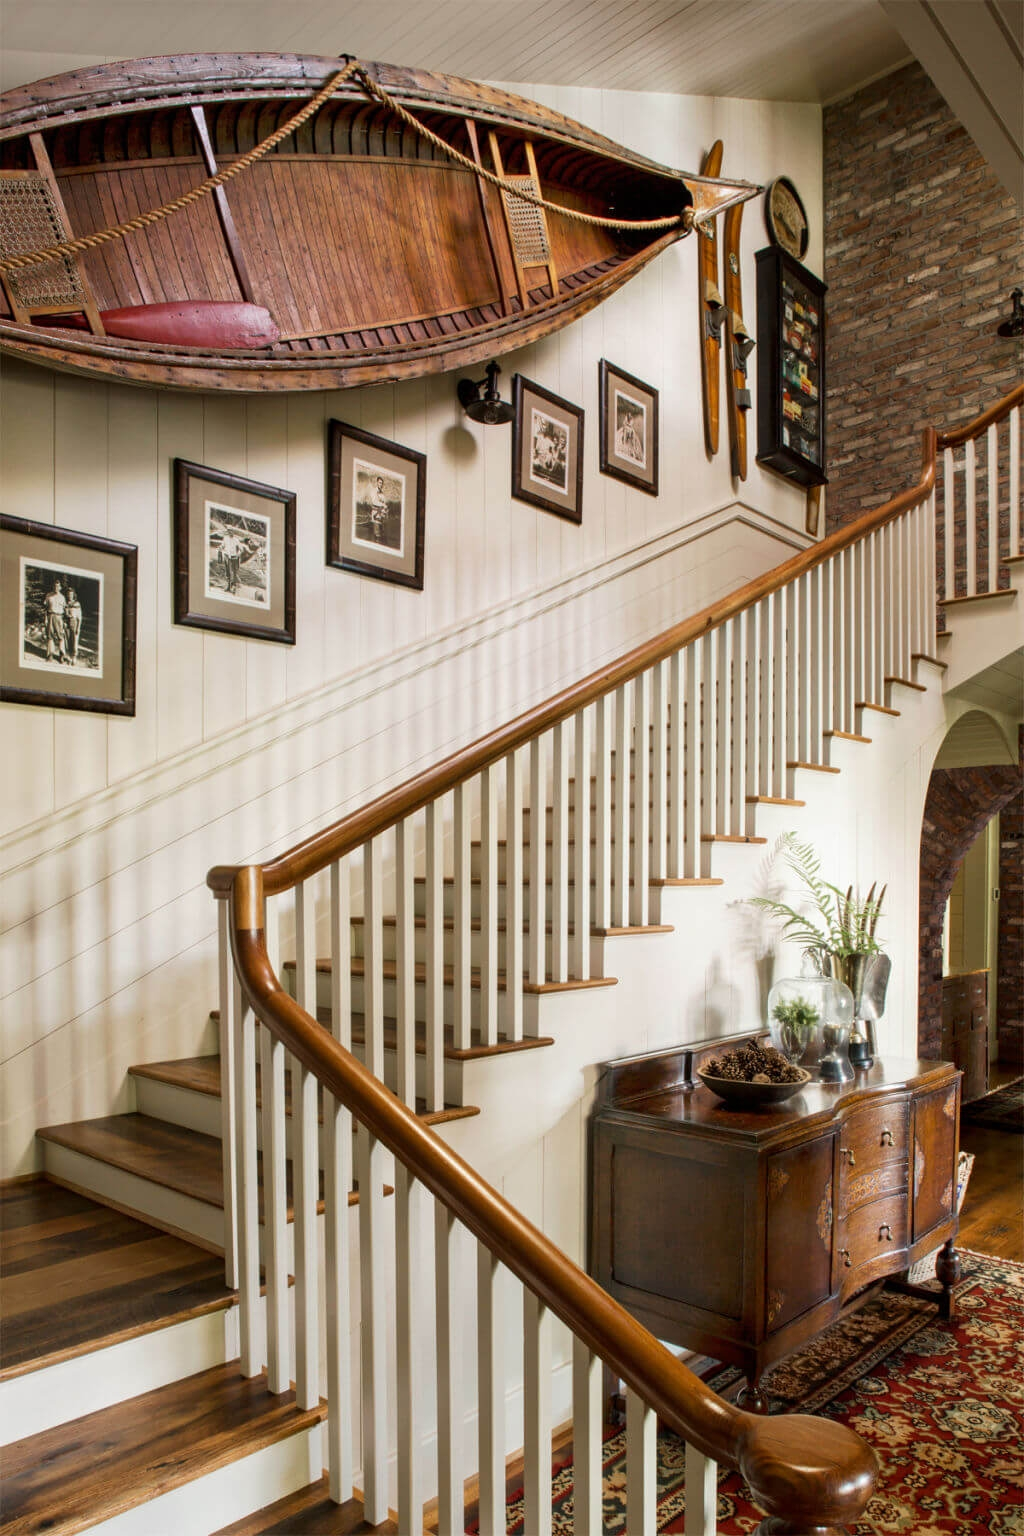 28 Best Stairway Decorating Ideas And Designs For 2020 | Interior Design For Staircase Wall | Side Wall | Cladding | Outside | 2Nd Floor | Under Stair